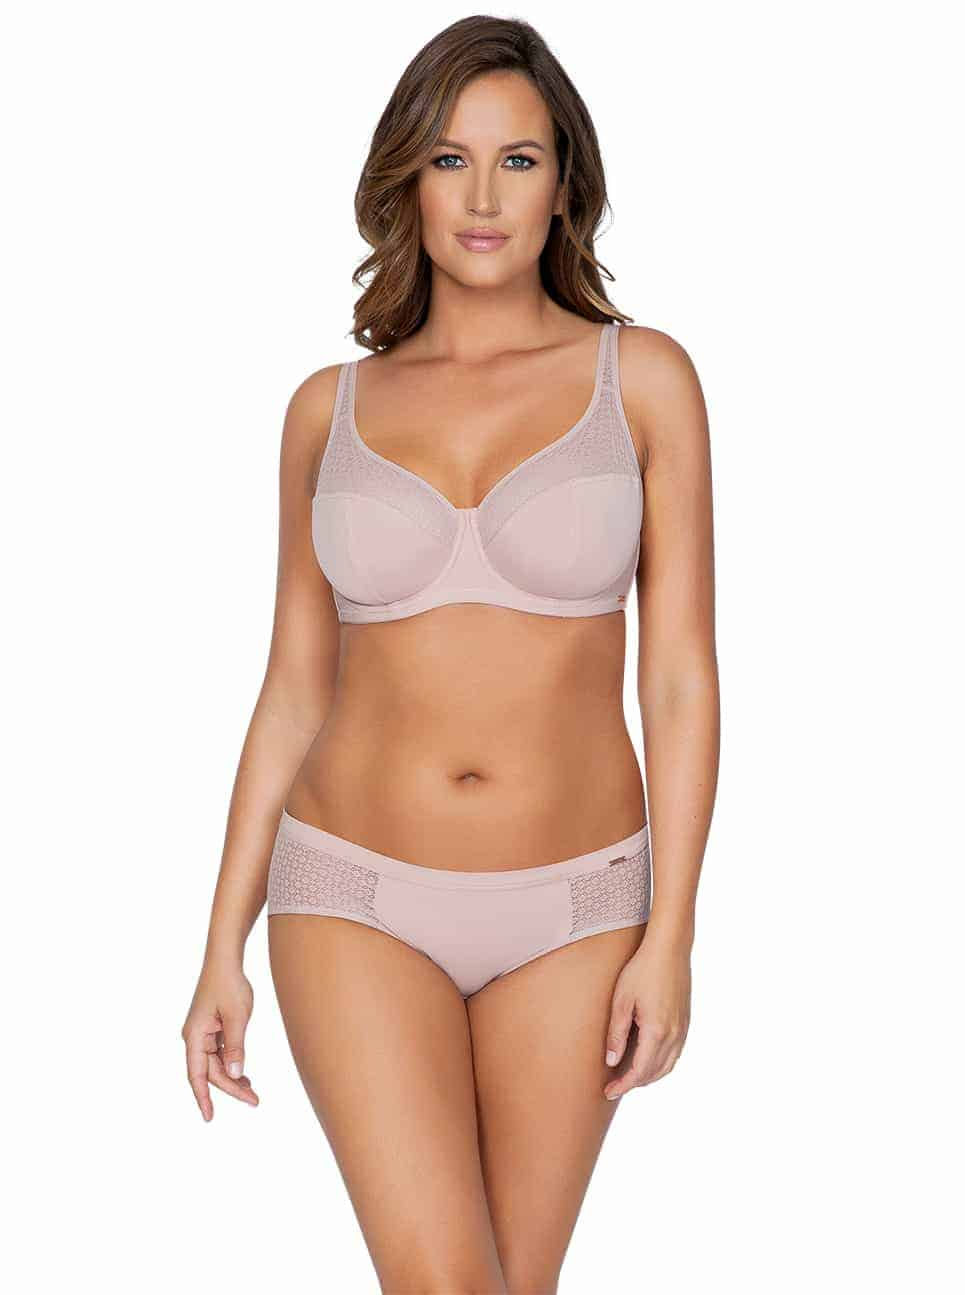 WendyP5412 UnlinedWire P5415 HipsterNudeFront - Wendy Hipster – Victorian Rose – P5415